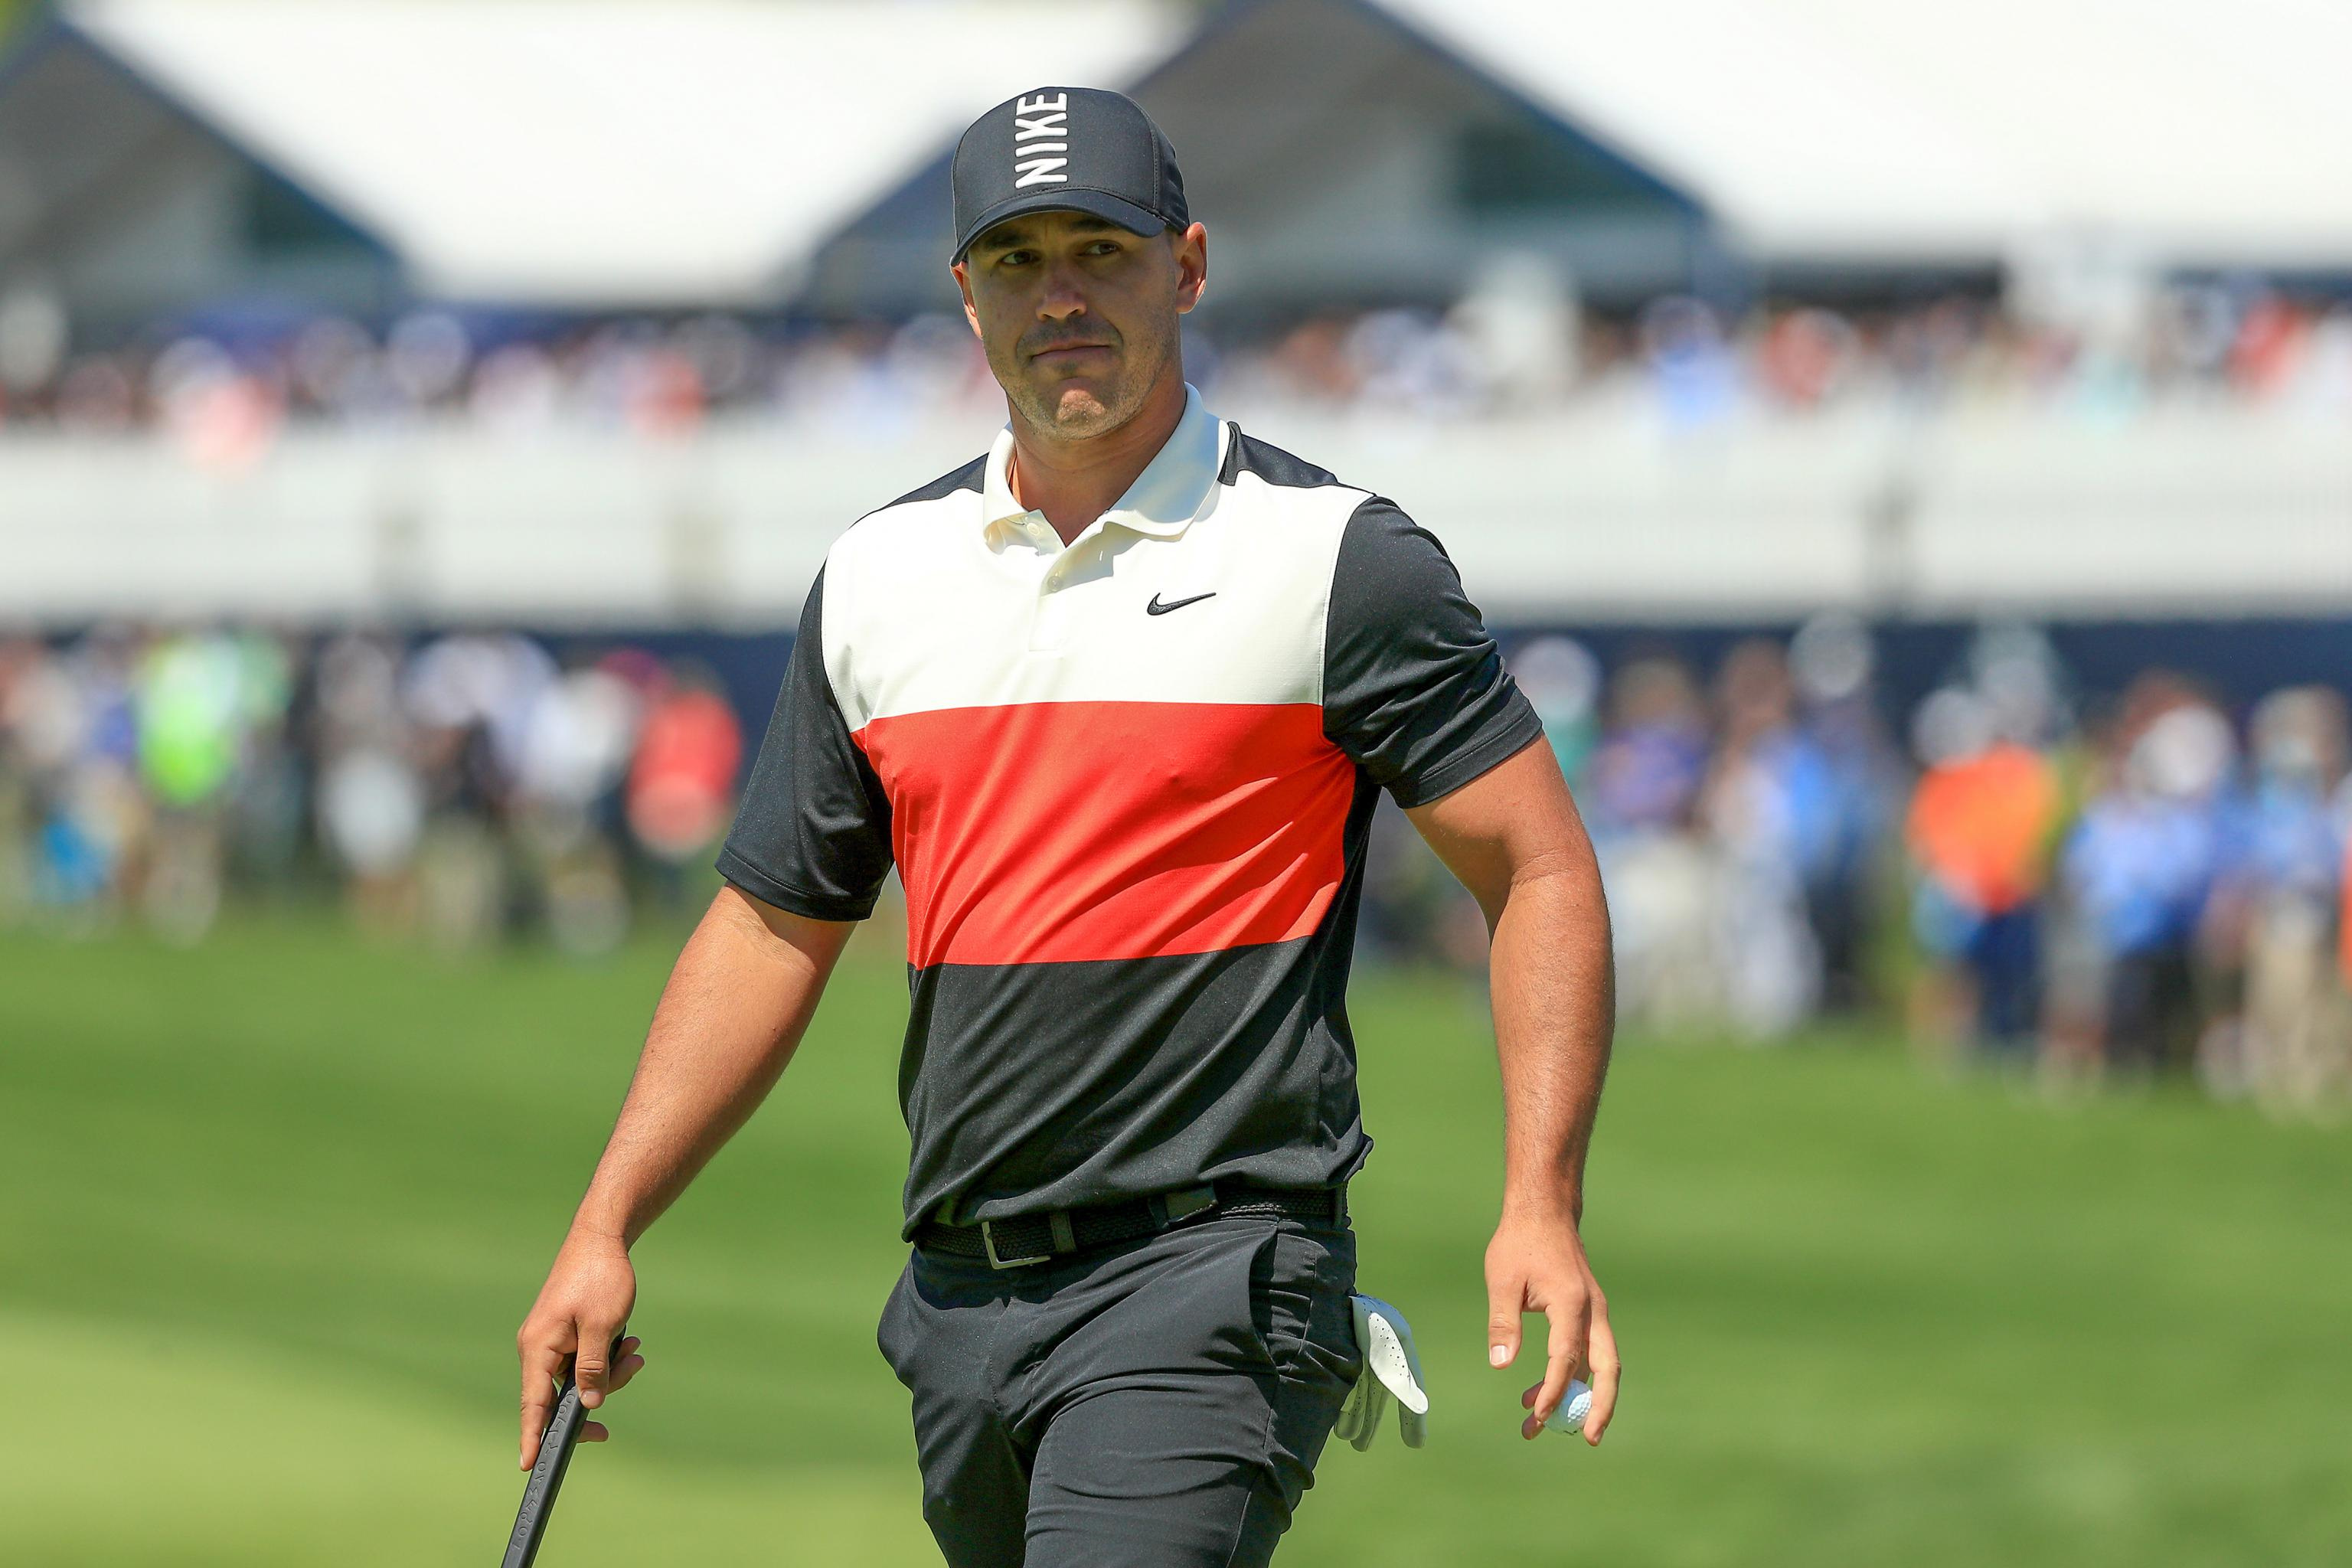 info for reputable site discount PGA Championship 2019: Brooks Koepka Holds 1-Stroke Lead After ...